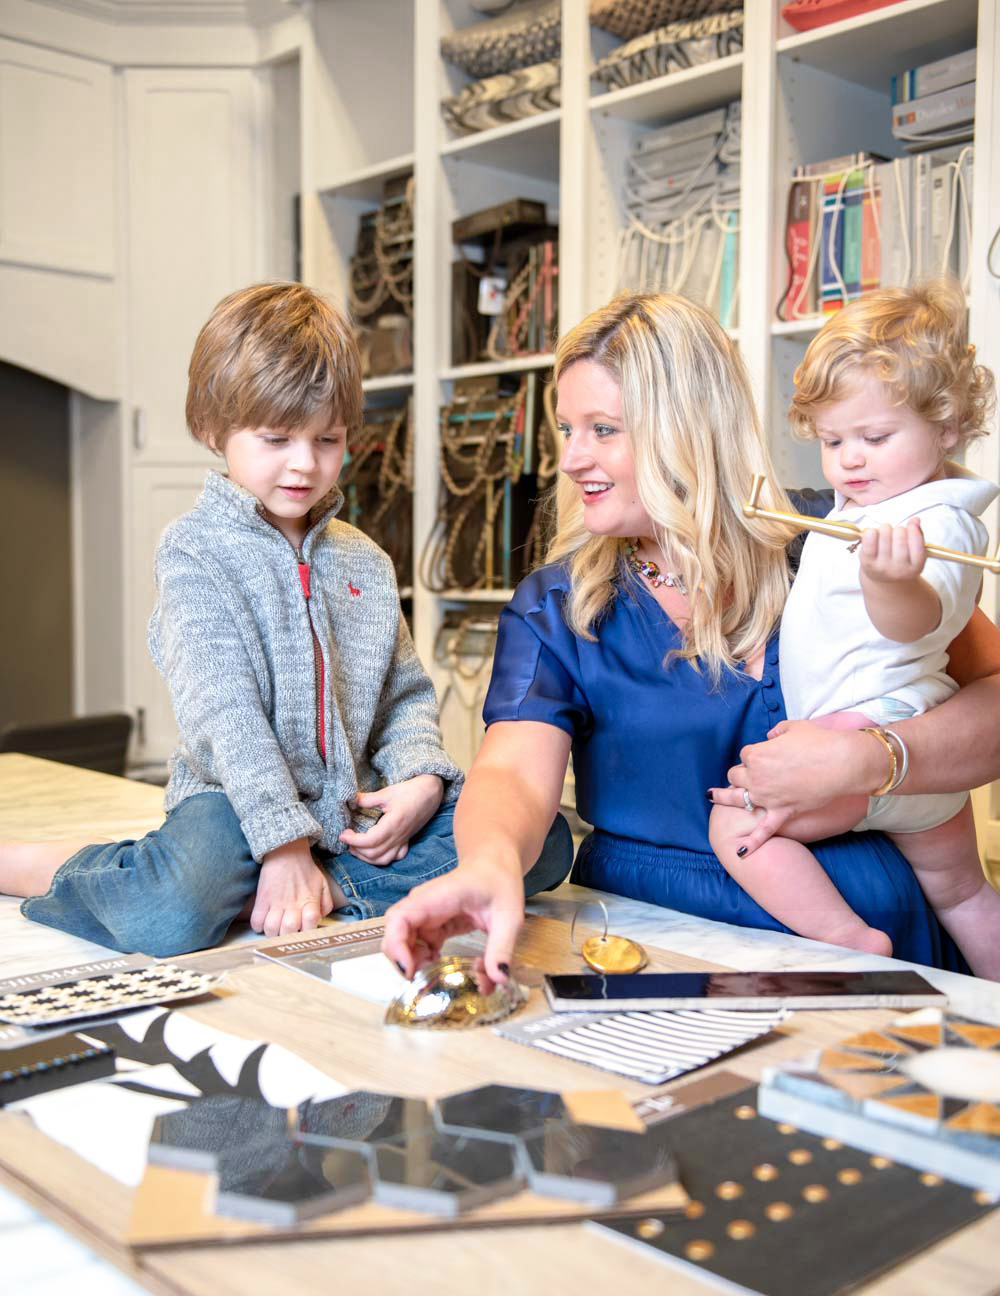 Being an interior designer means I have so many options at my finger tips ready to be used but it can be overwhelming. Thankfully, being a mom means that some options aren't as practical as others. Finding elements with style and functionality is always my go-to when designing for my family and others.